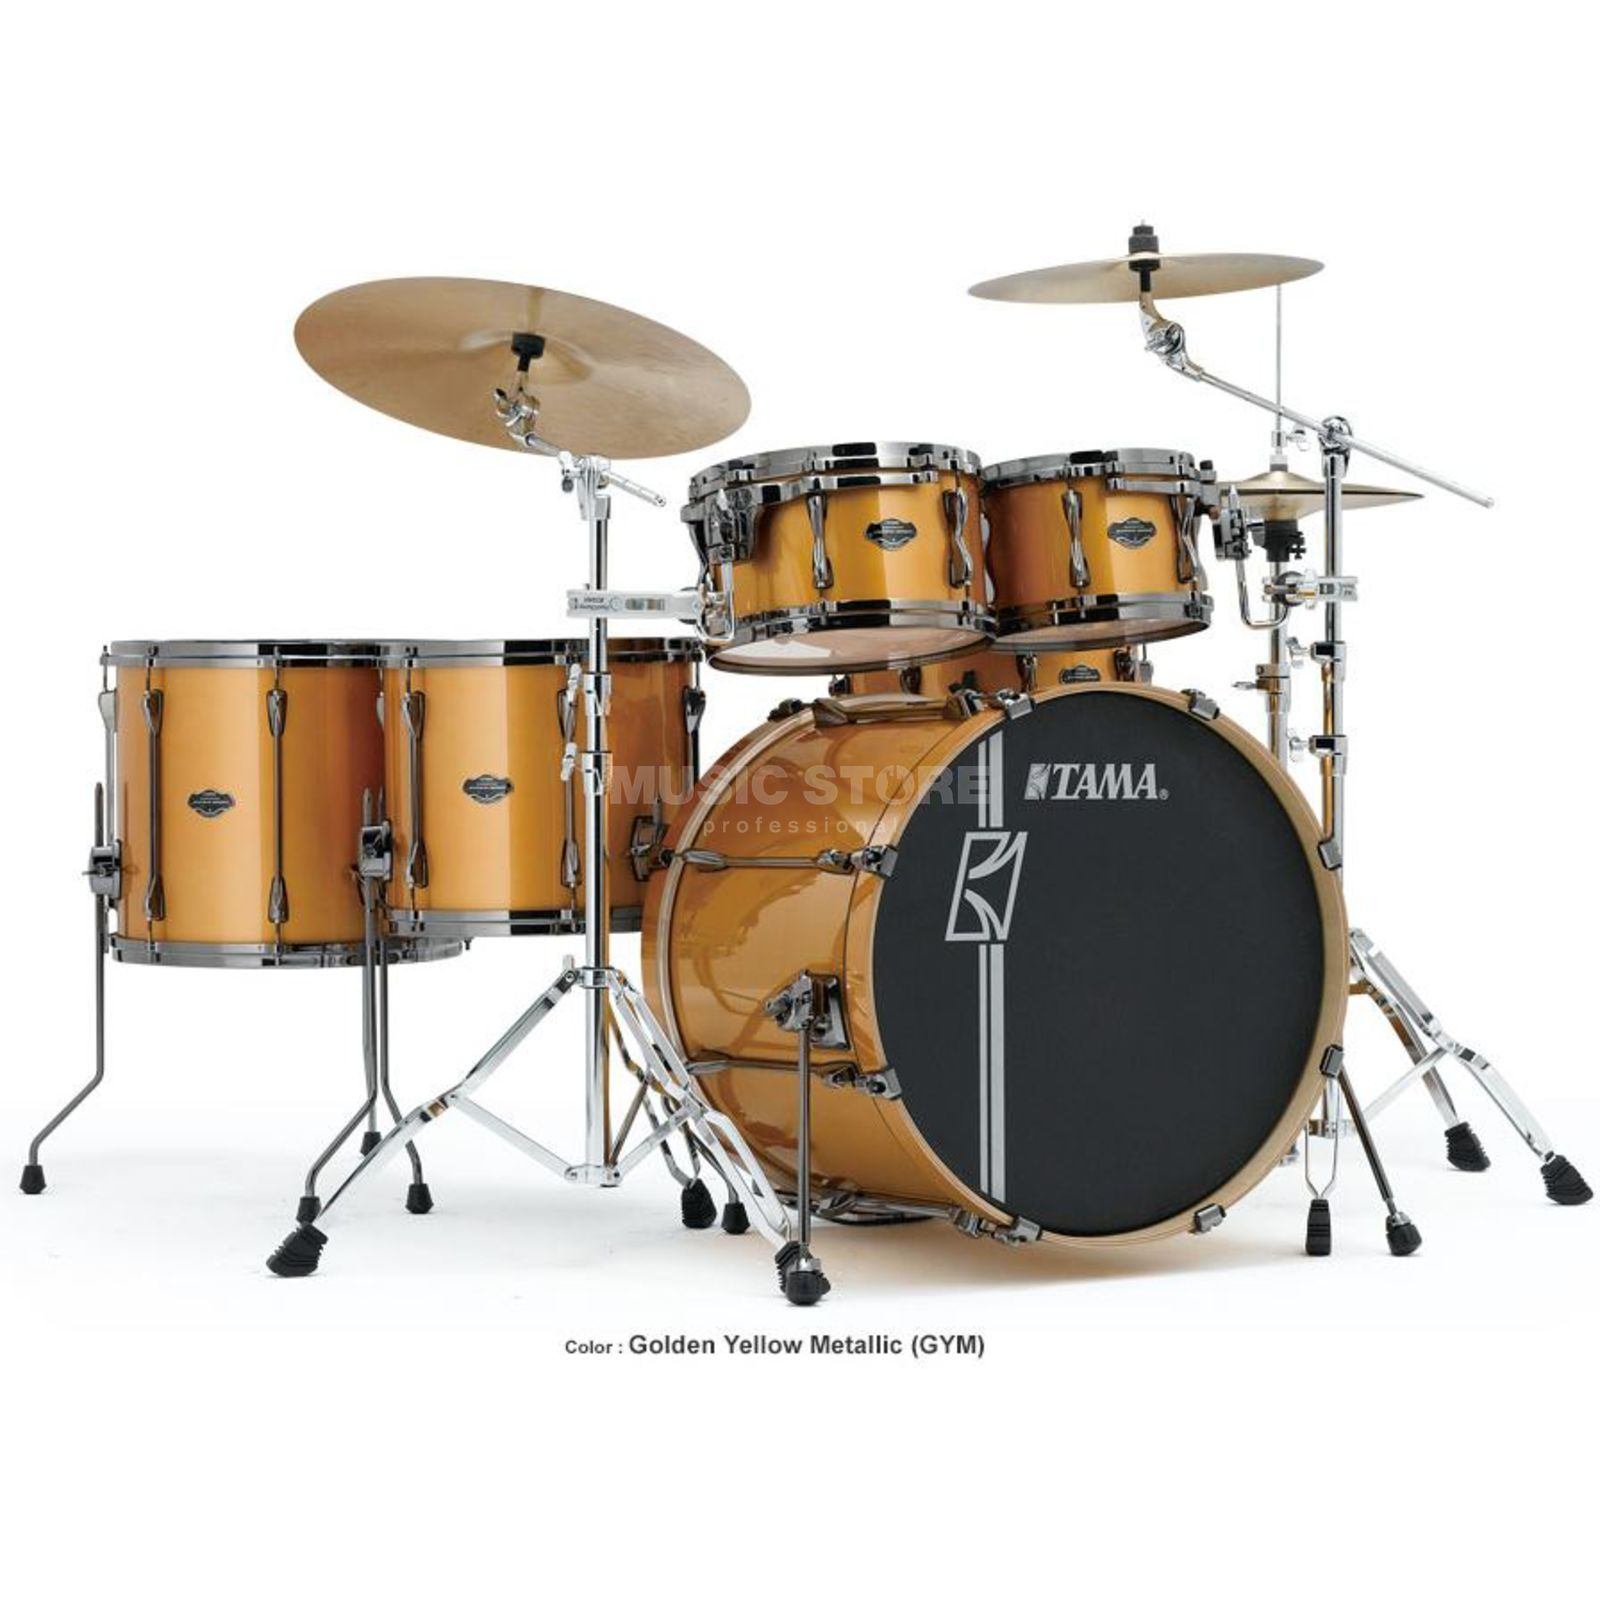 Tama Superstar HD Maple ML52HZBN, Golden Yellow Metallic, GYM Produktbild